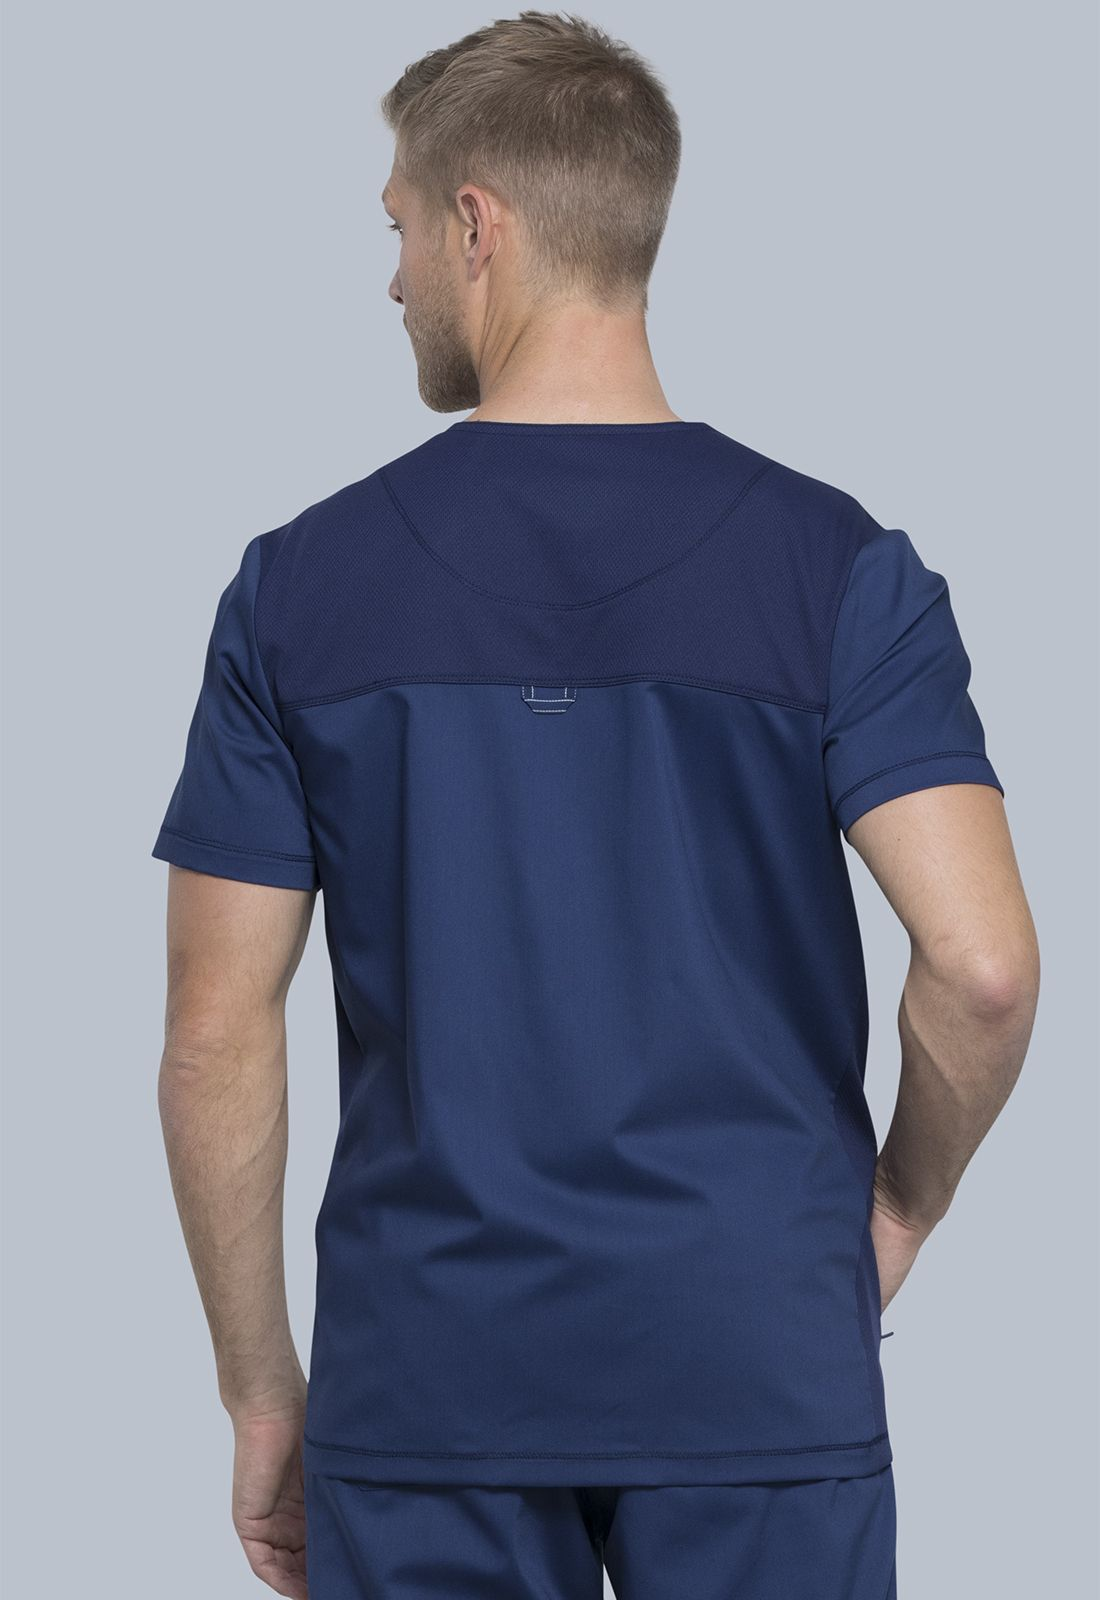 https://medcloth.by/images/stories/virtuemart/product/ww603-navy-4.jpg